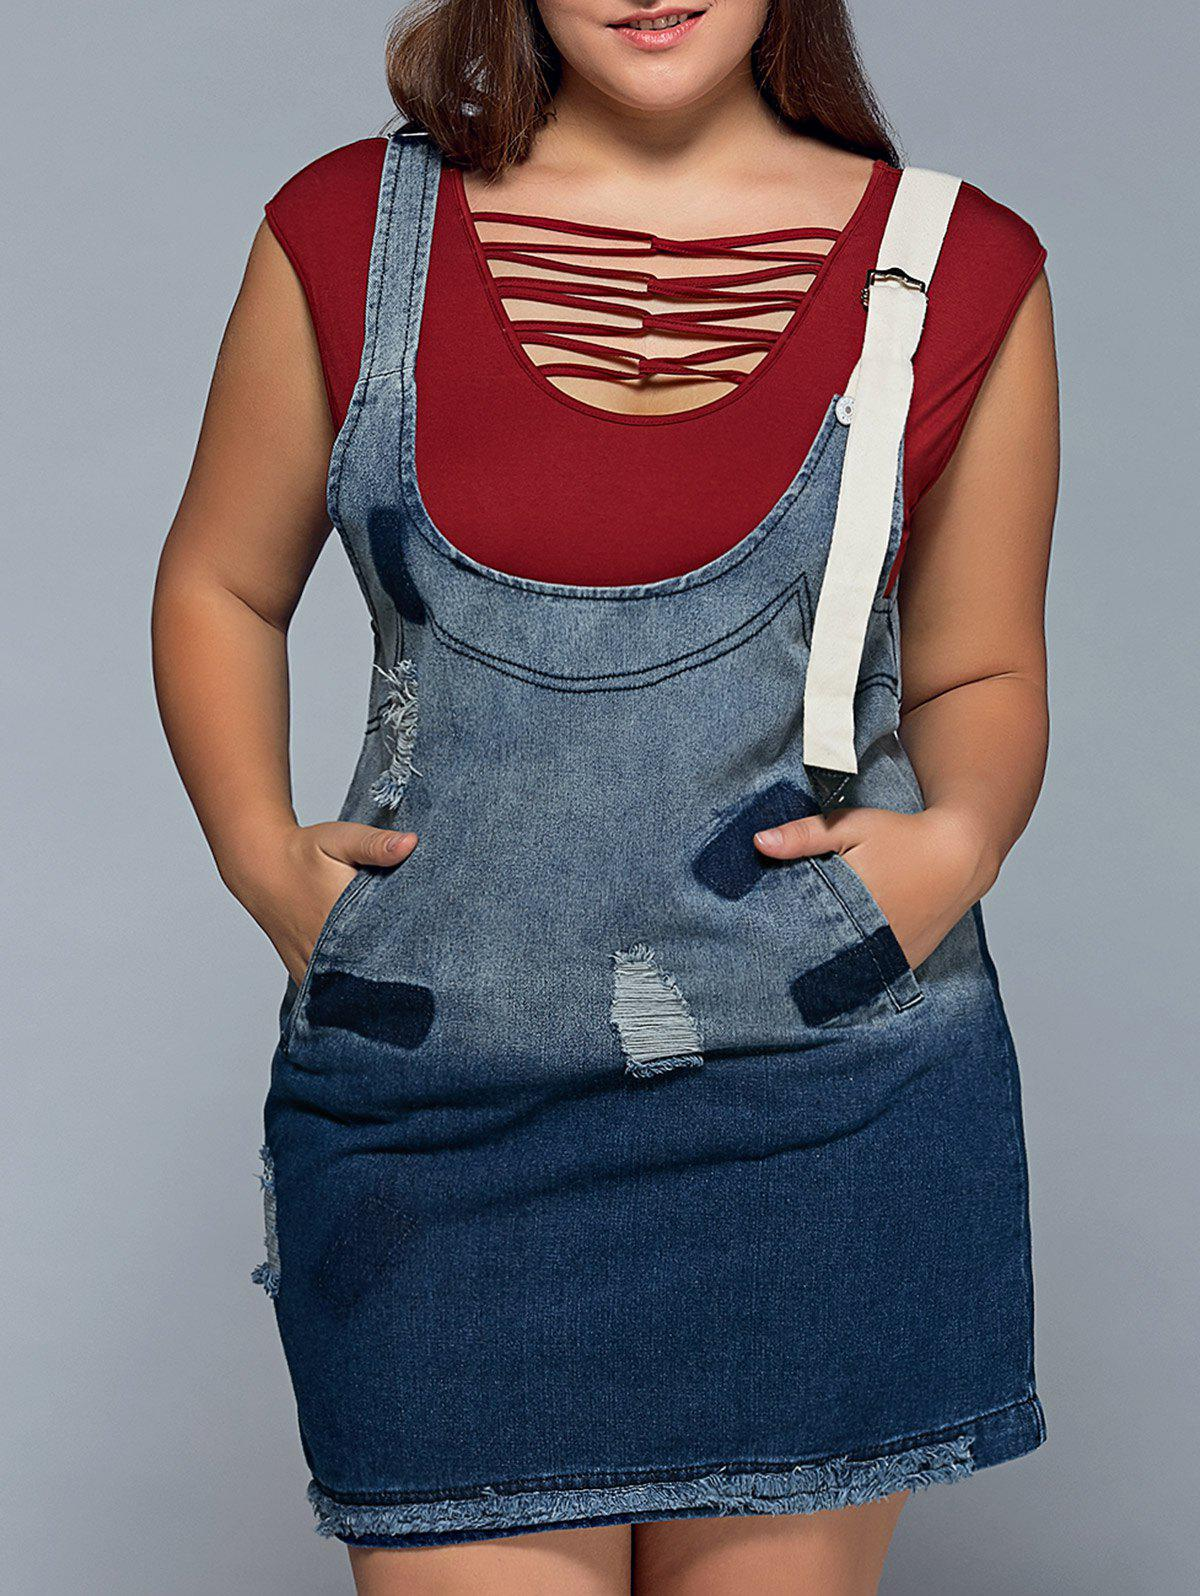 Ripped Denim Plus Size Pinafore DressWOMEN<br><br>Size: 4XL; Color: BLUE; Style: Casual; Material: Polyester; Fabric Type: Denim; Silhouette: Sheath; Dresses Length: Mini; Neckline: Scoop Neck; Sleeve Length: Sleeveless; Pattern Type: Patchwork; With Belt: No; Season: Fall,Spring,Summer; Weight: 0.540kg; Package Contents: 1 x Dress;